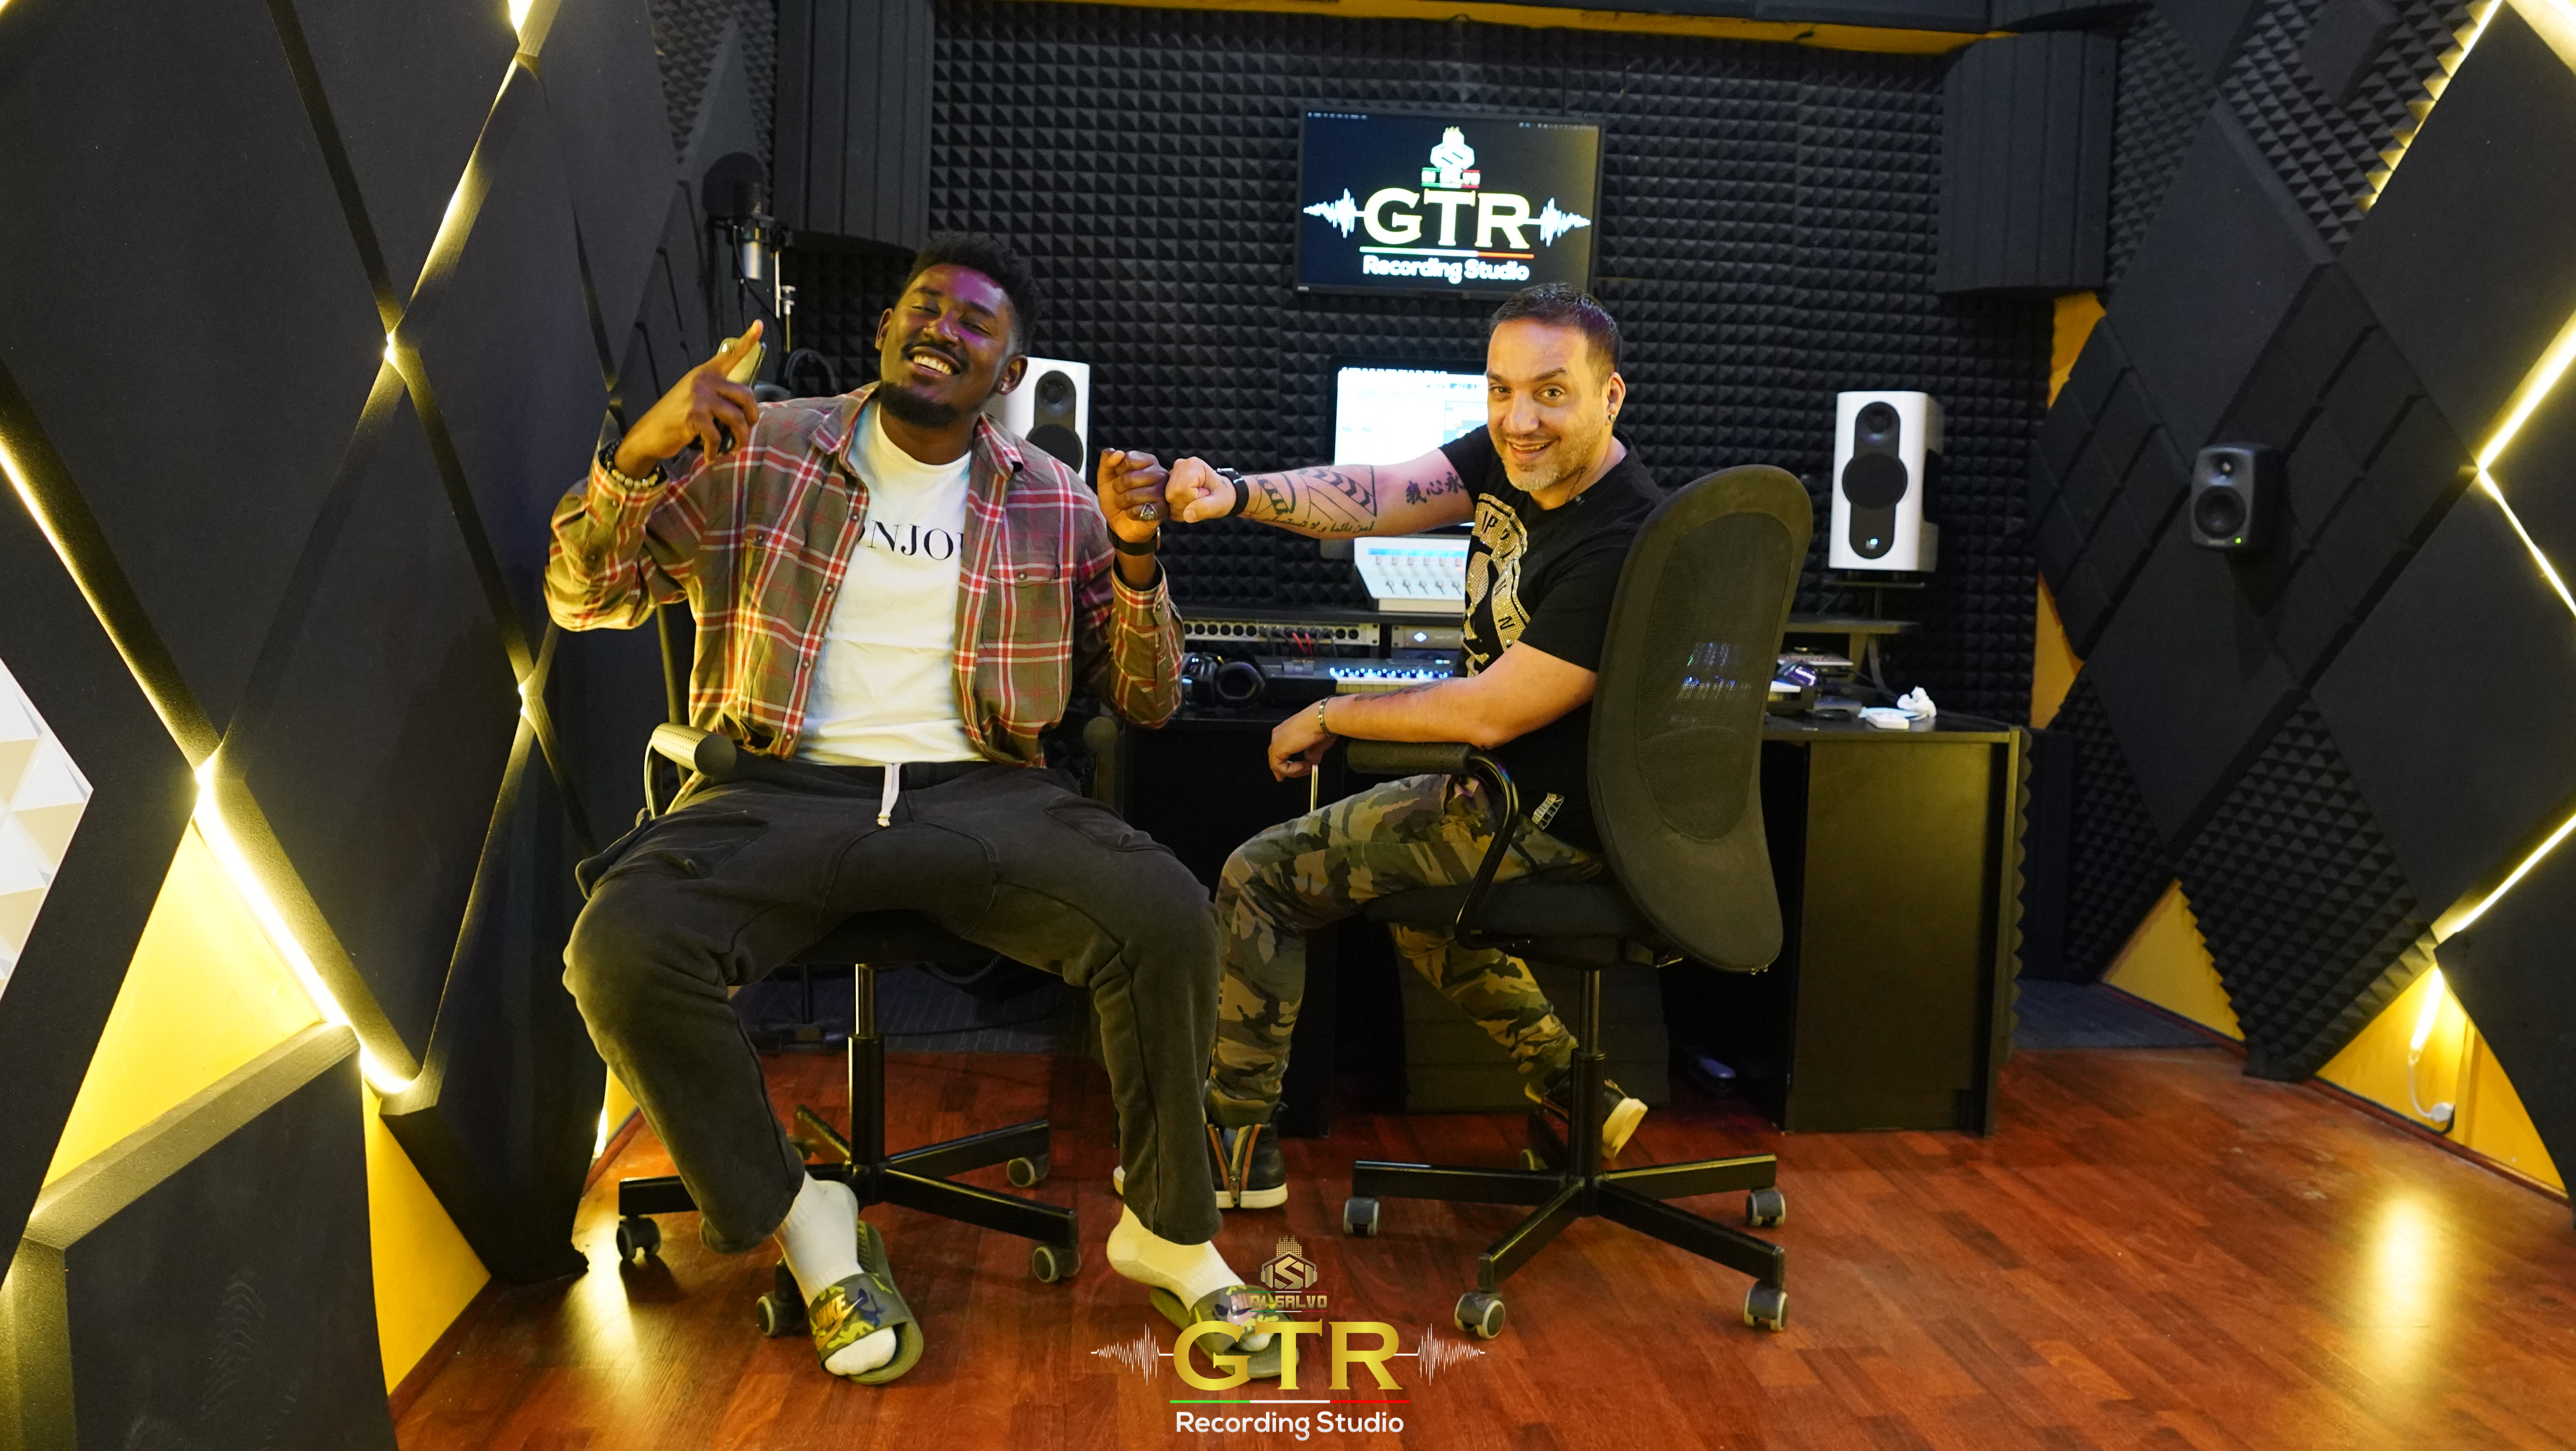 GTR Recording Studio Introducing a Recording Interface to Set off Aspirant's Dream Career